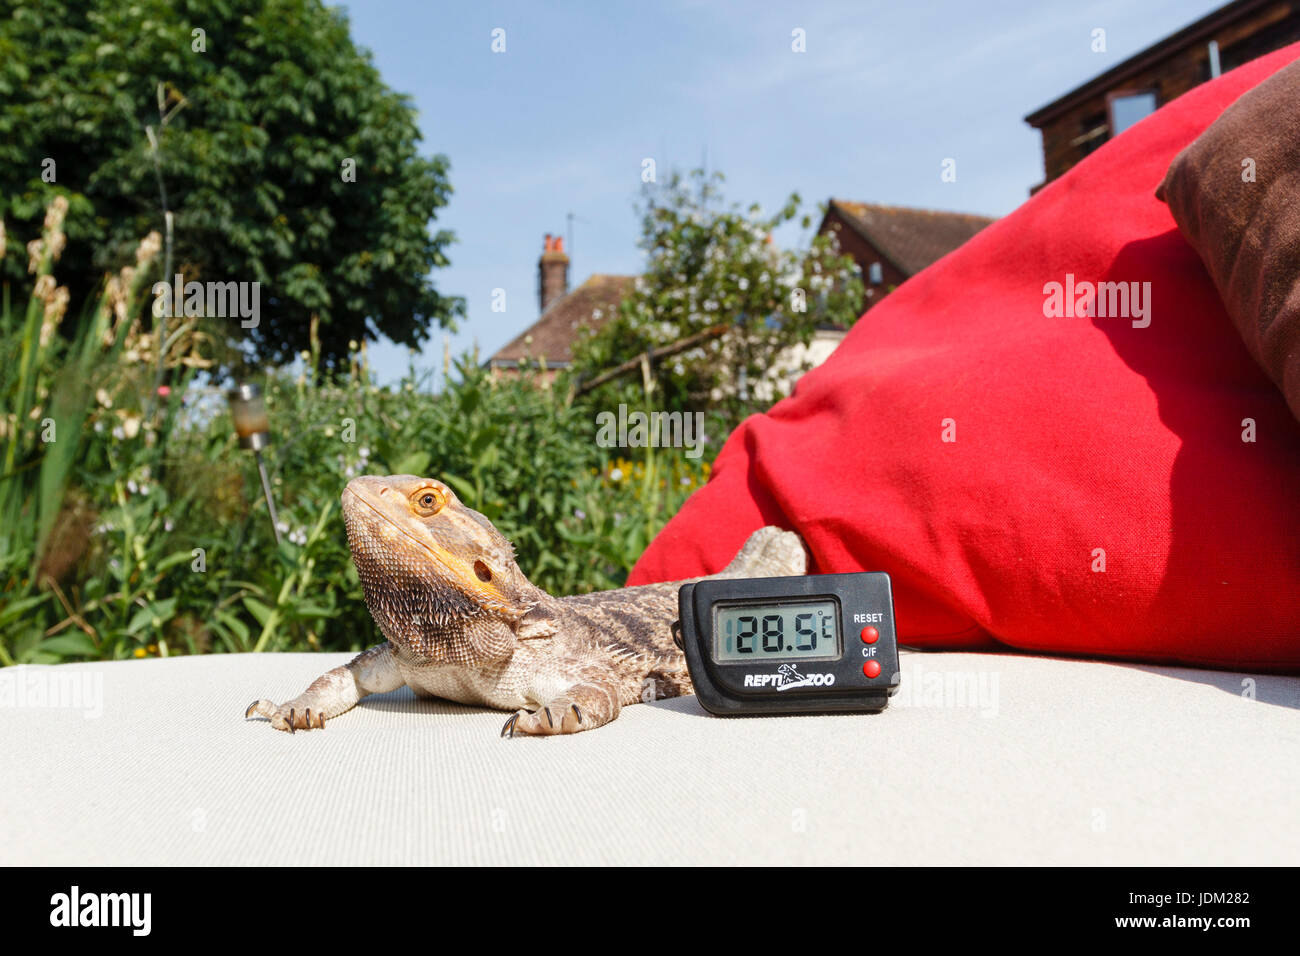 .21st Jun 2017.UK weather.Fenster the bearded dragon enjoys basking in the sun this morning as temperatures reach - Stock Image